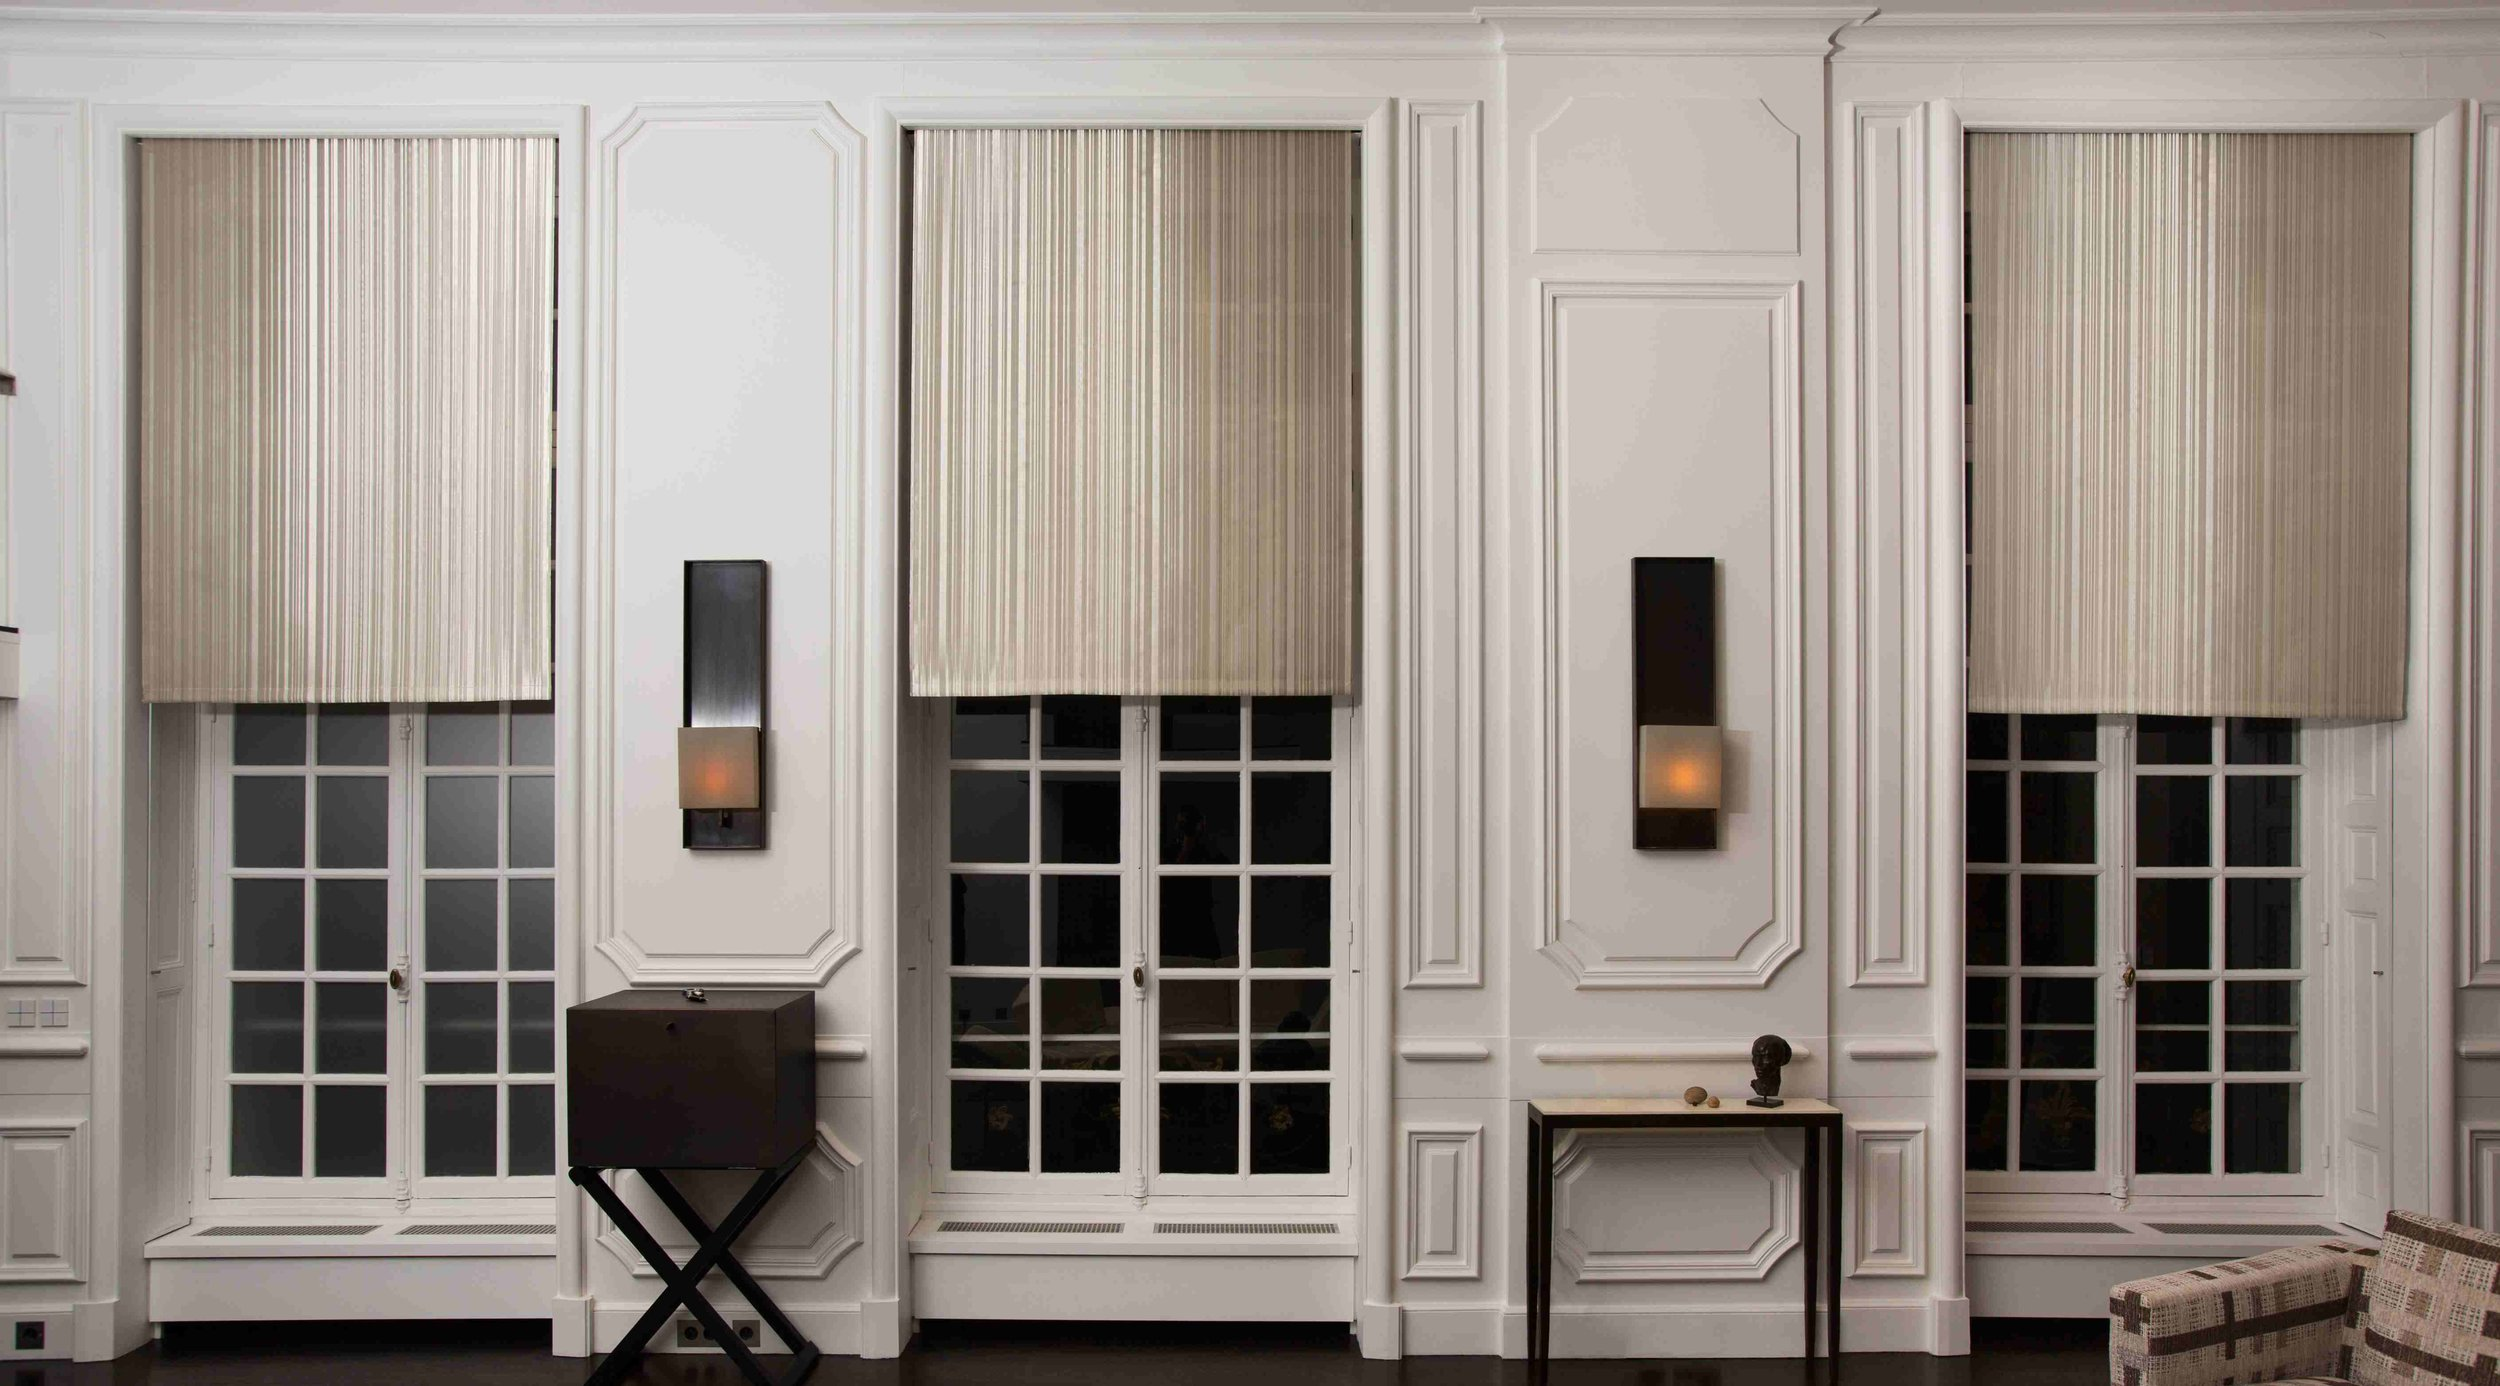 Sophie-Mallebranche-Roller-Shades-Window-Treatments-Paris